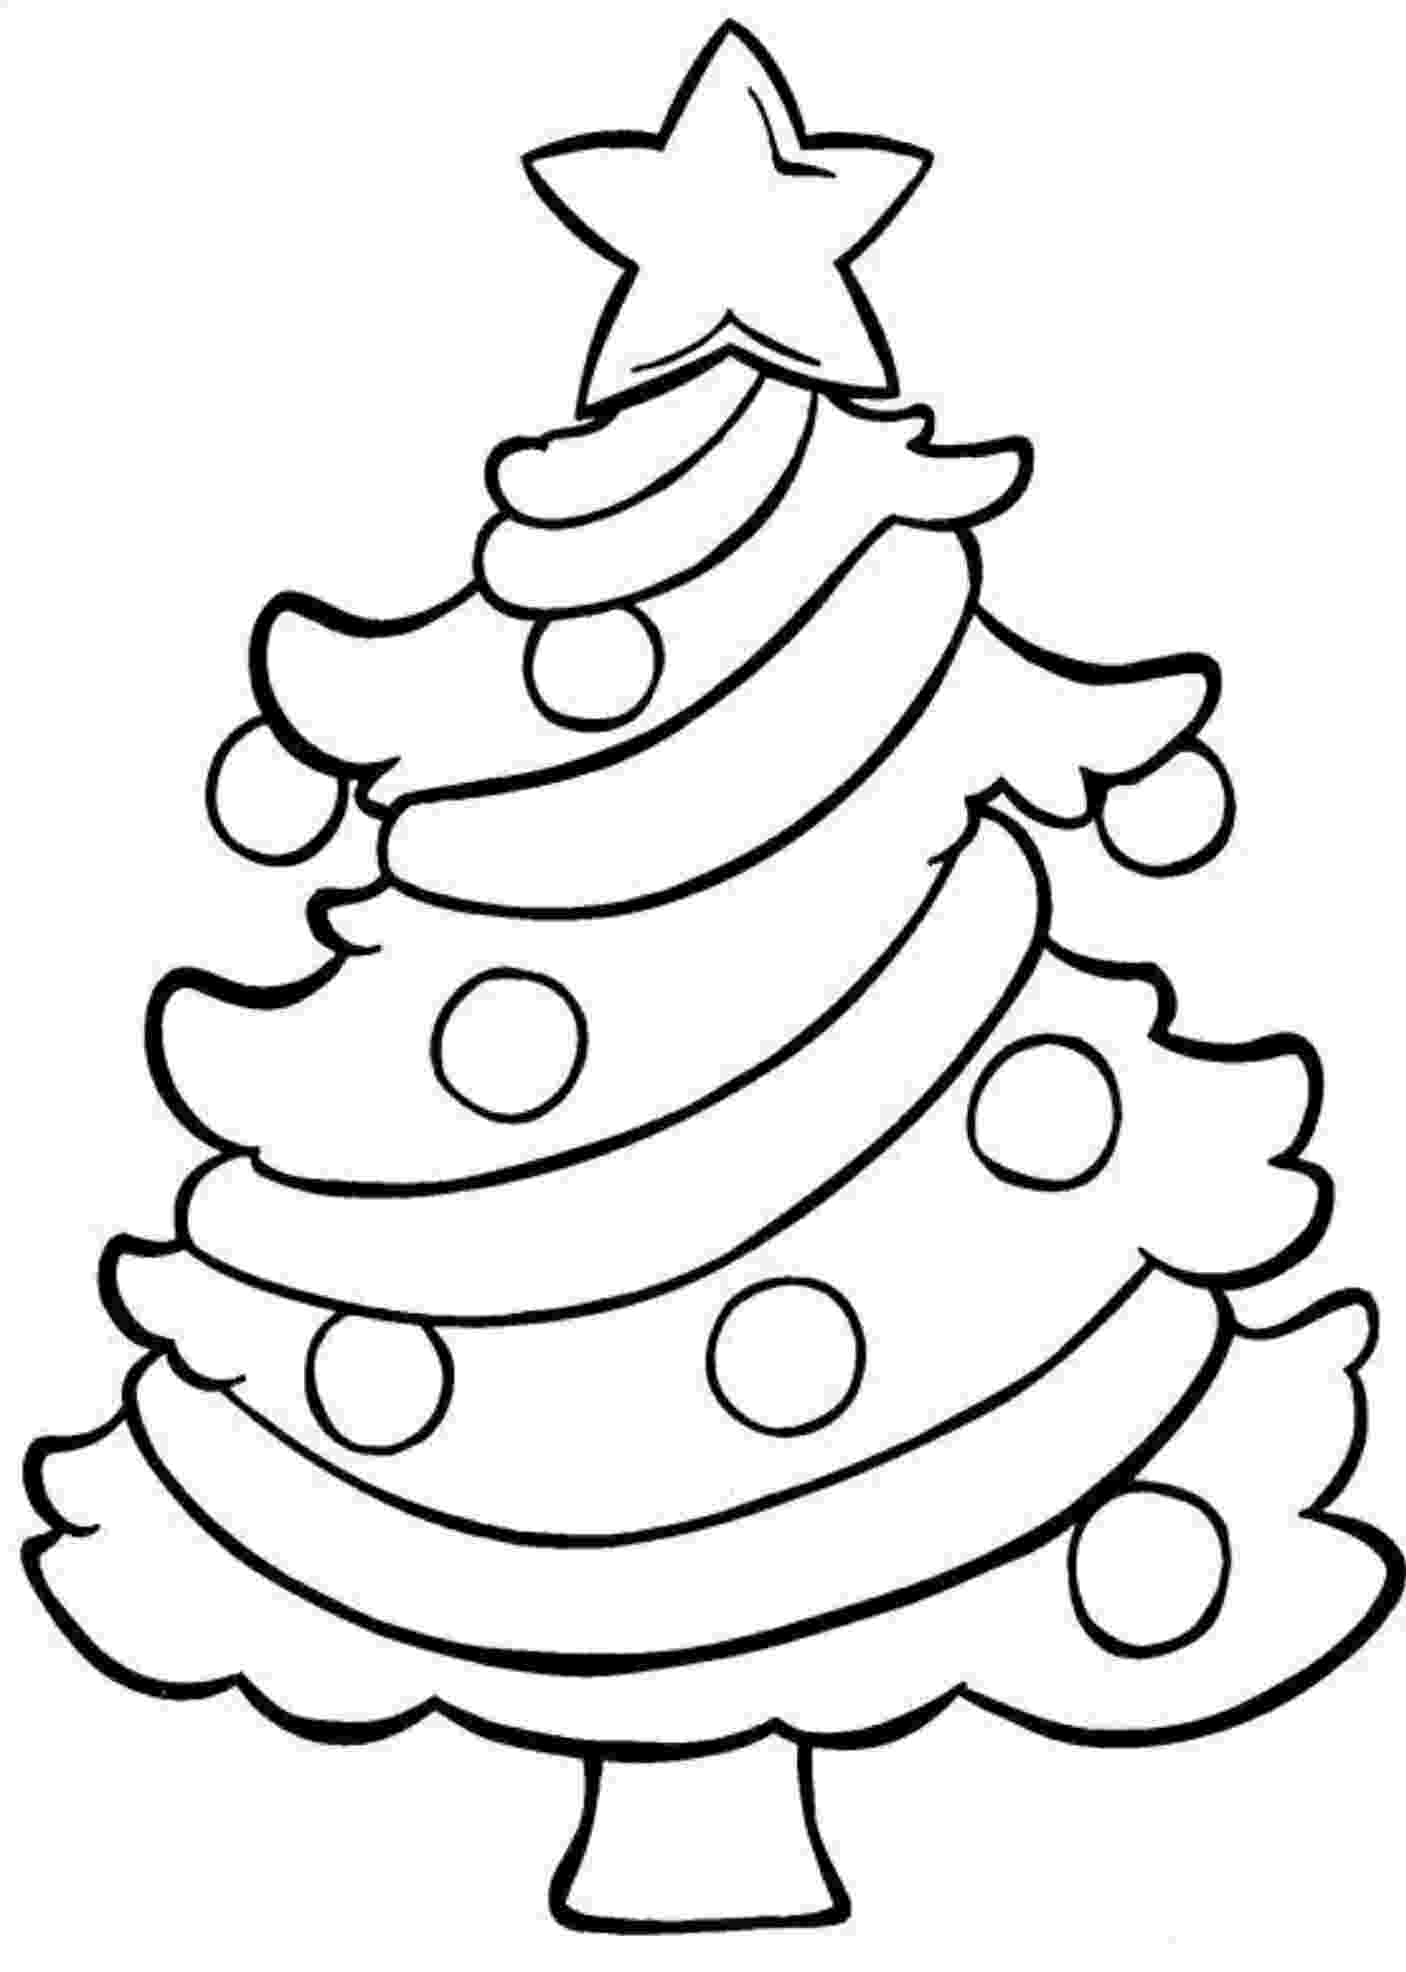 christmas presents coloring pages free christmas coloring pages retro angels the presents coloring pages christmas